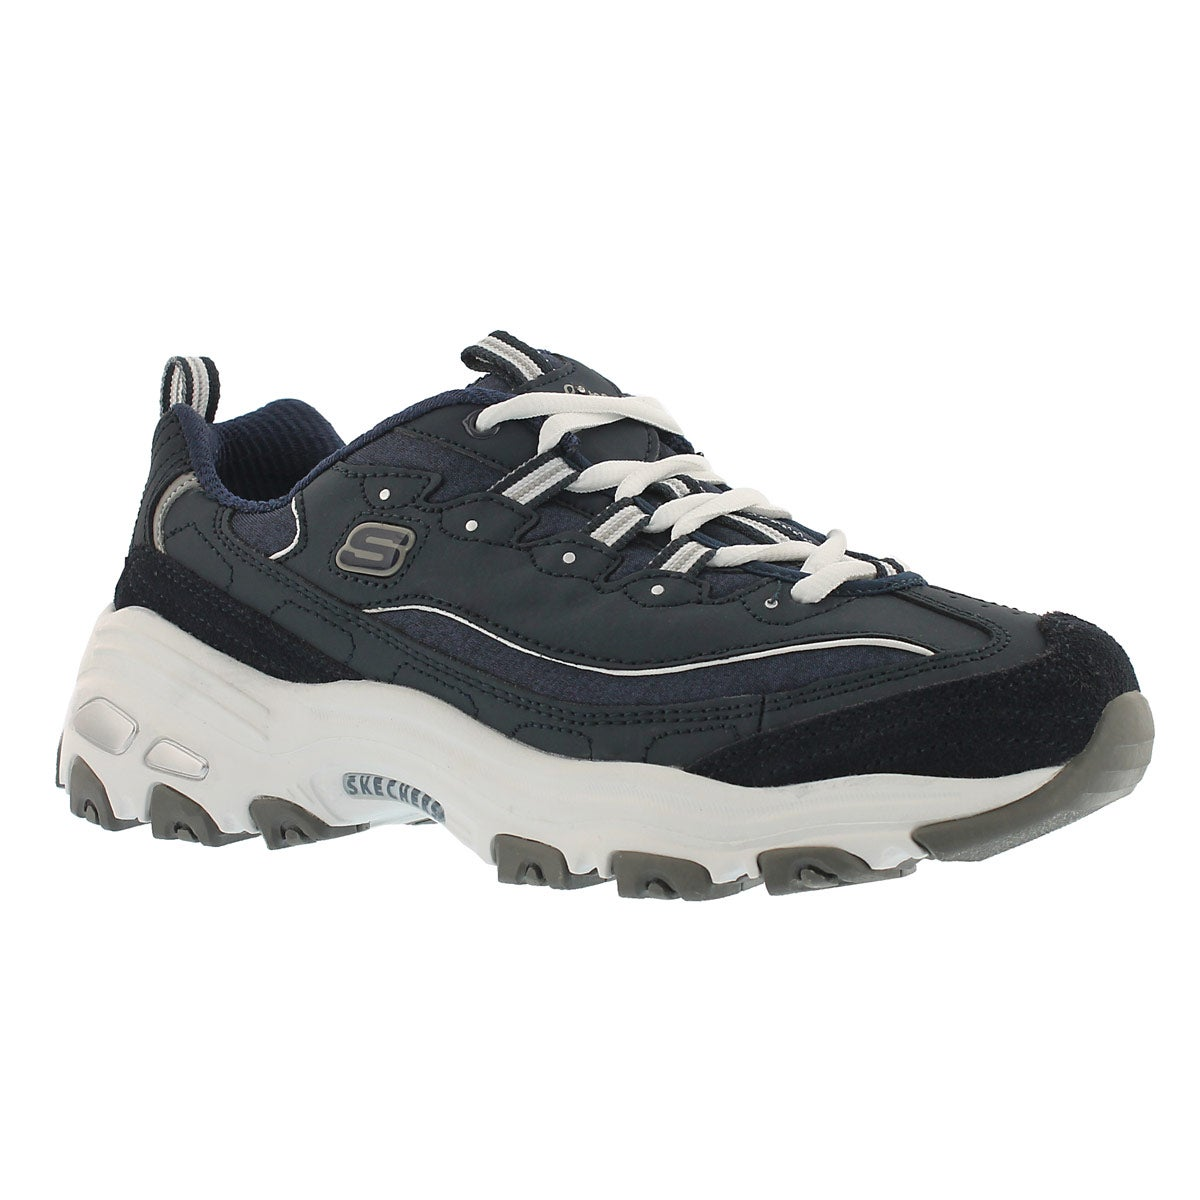 Women's D'LITES ME TIME navy/white sneakers